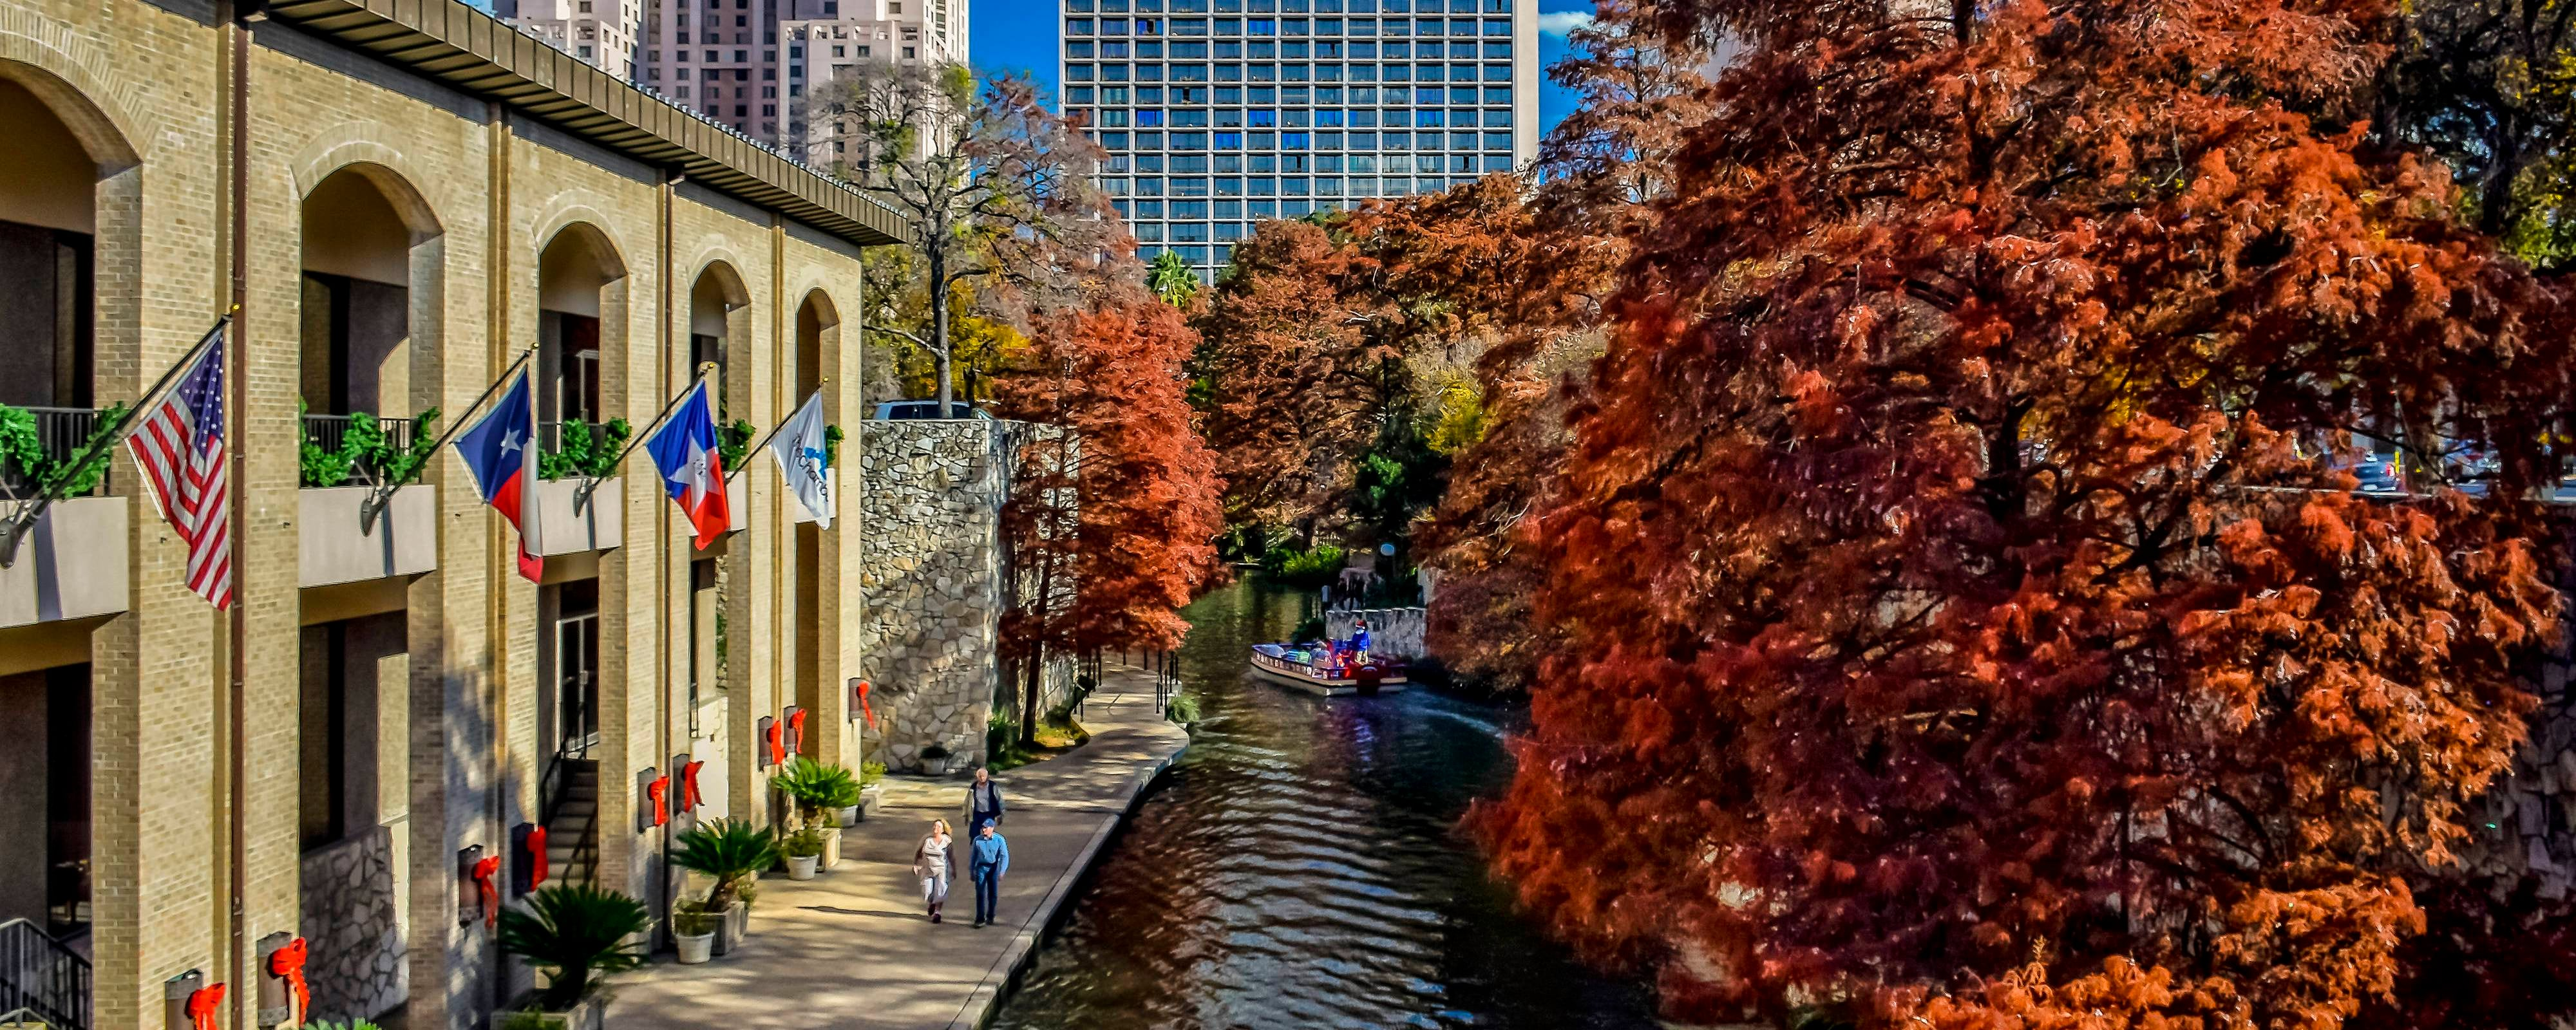 San Antonio River Walk hotel | San Antonio Marriott Rivercenter